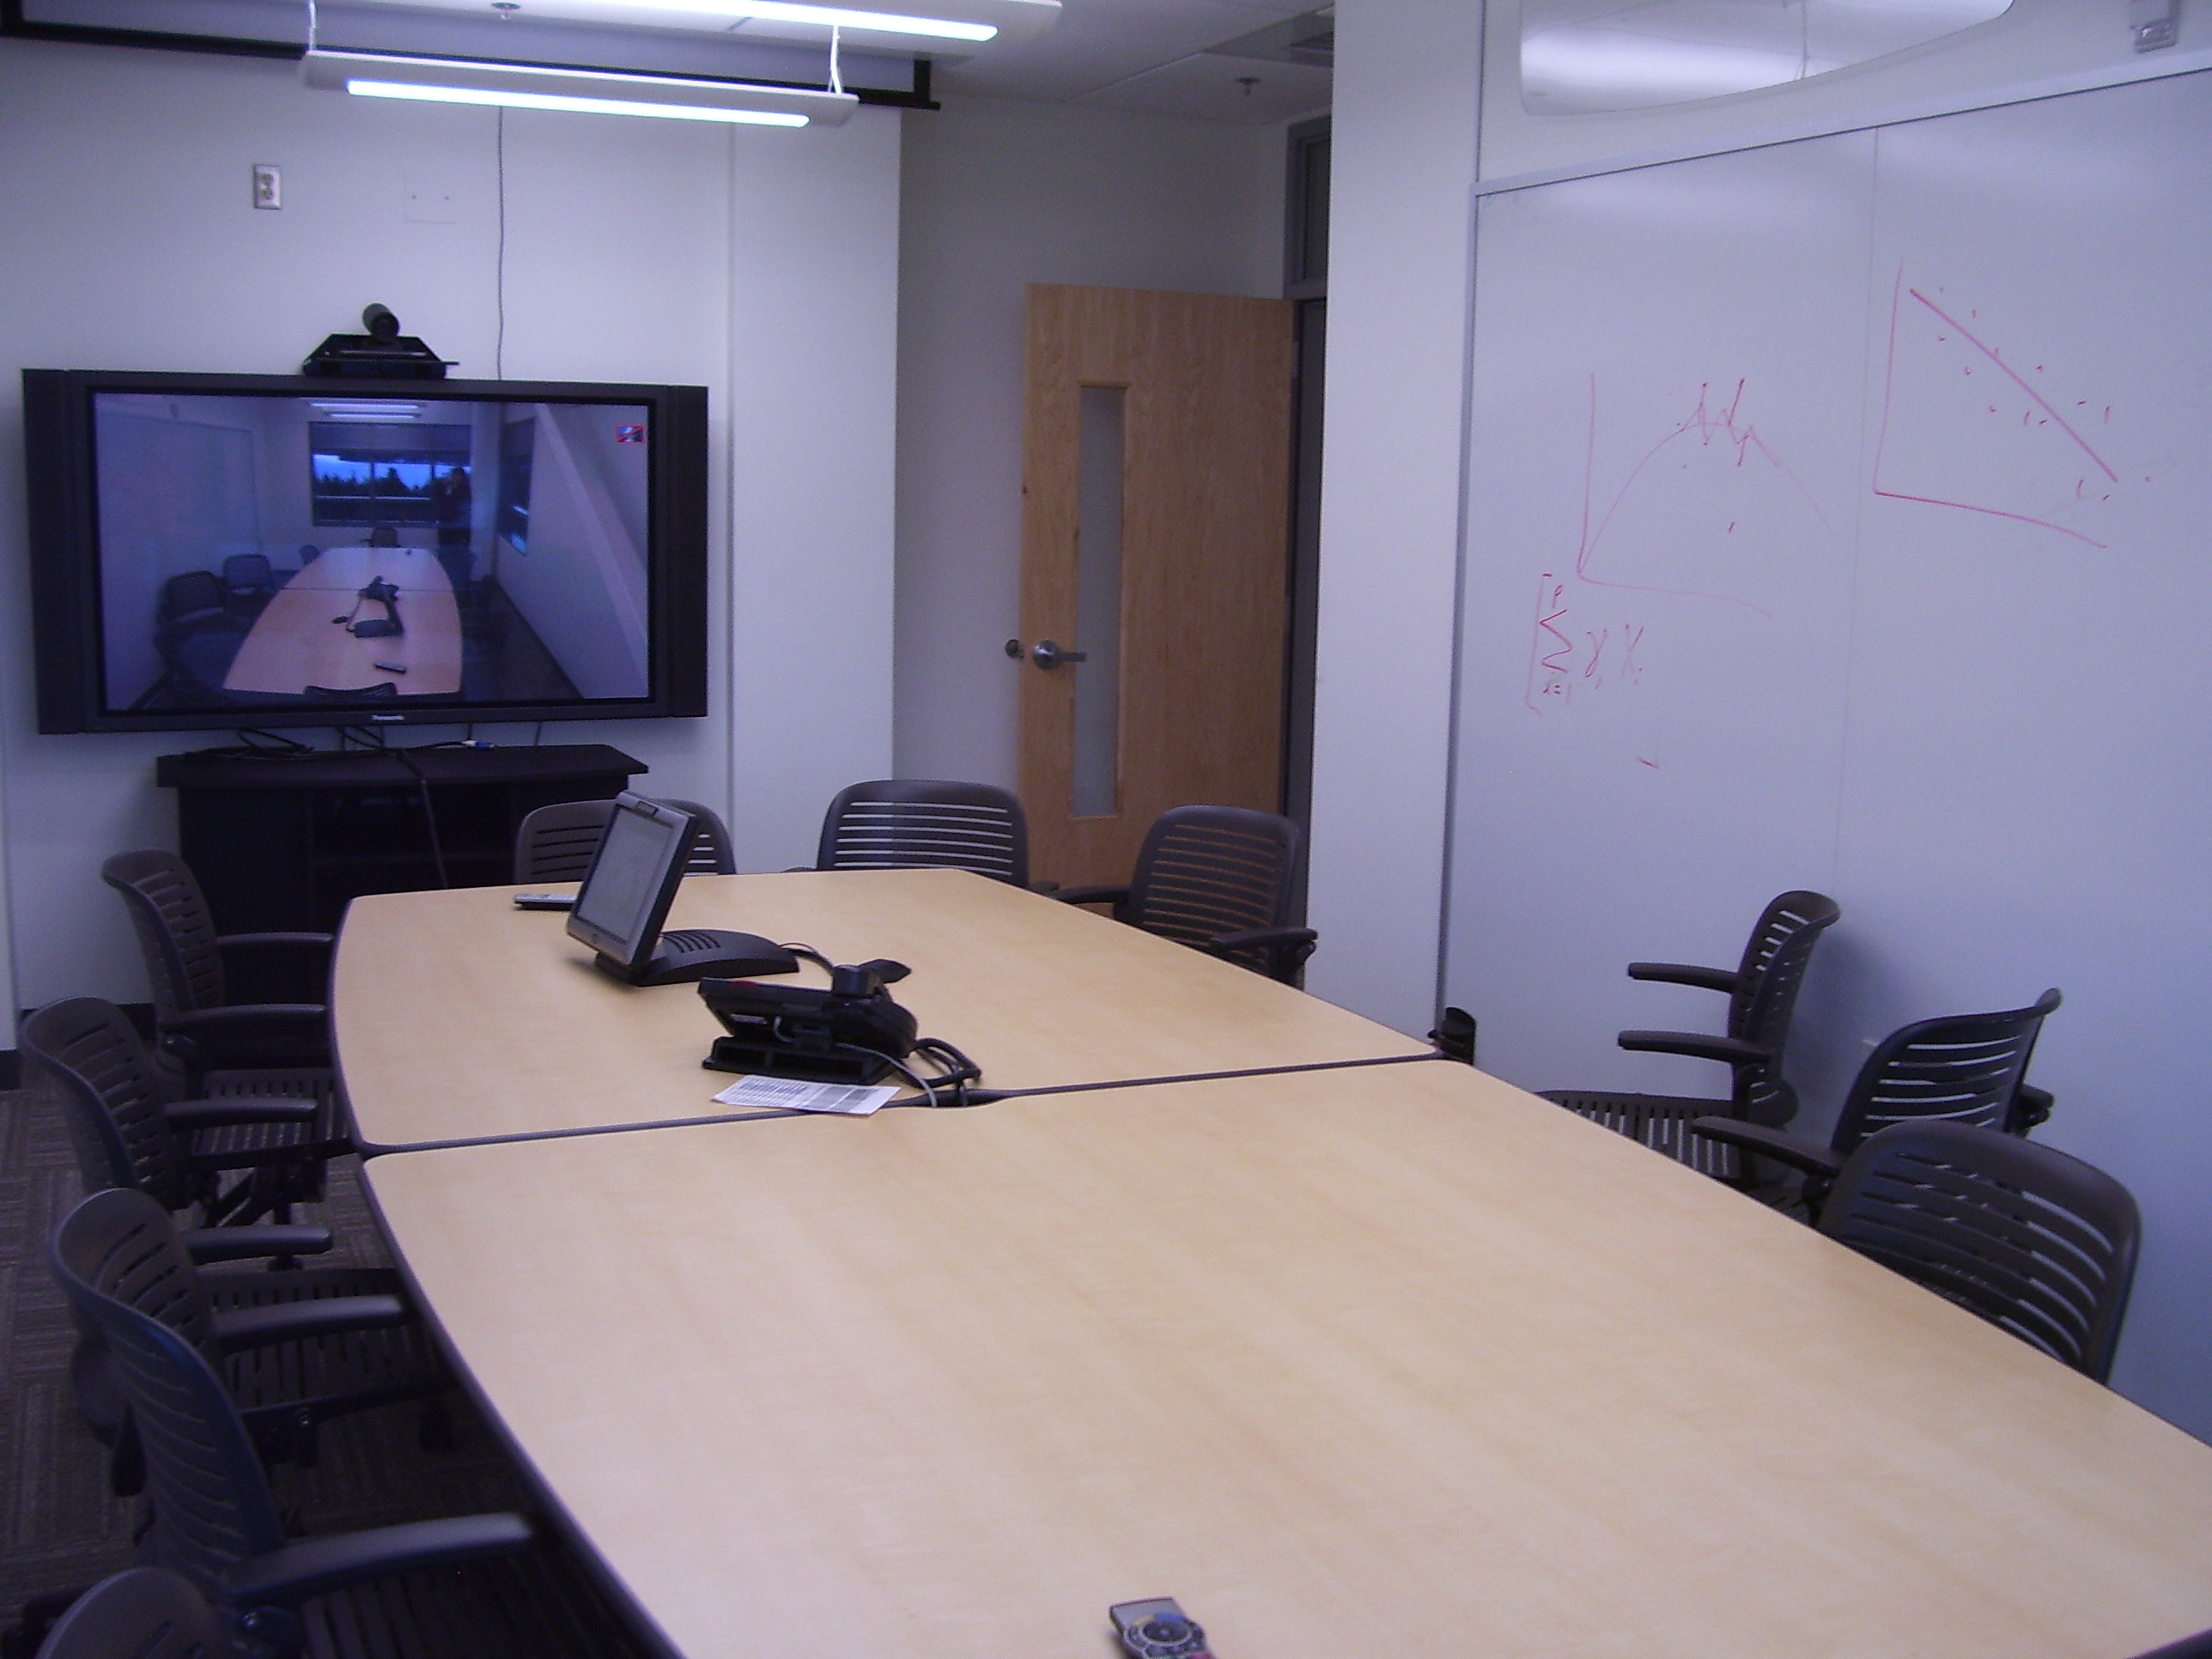 301 Lena Point | 12 people | videoconference room